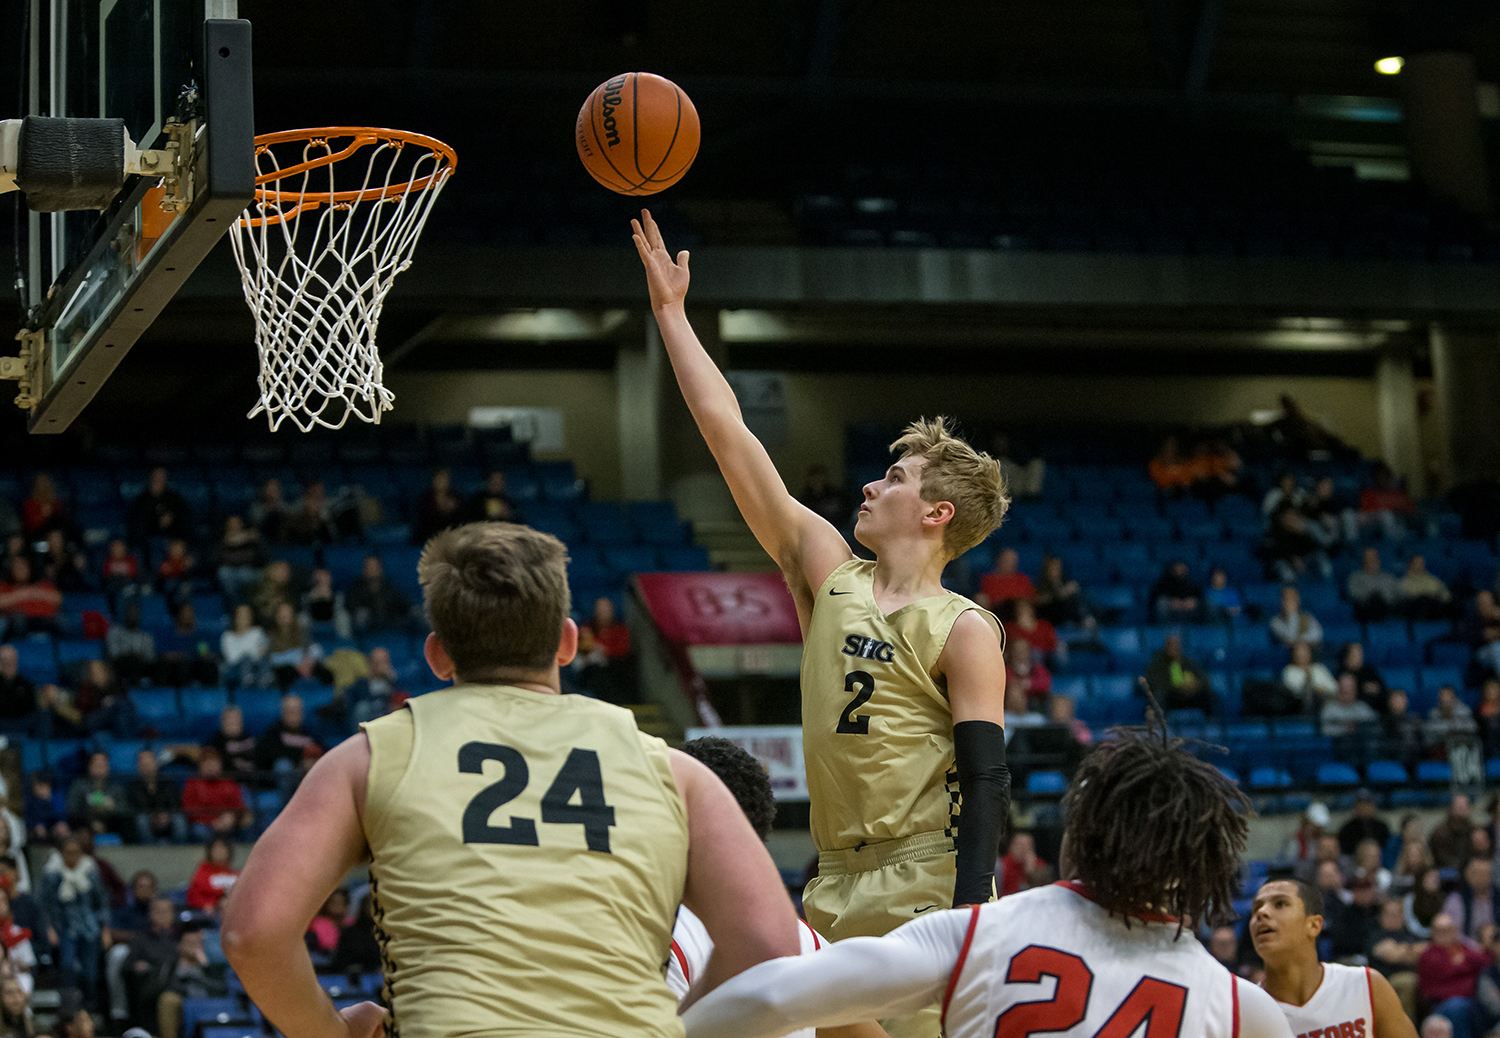 Sacred Heart-Griffin's Joe Gustafson (2) lays it in against Springfield in the second quarter on opening night of the Boys City Tournament at the Bank of Springfield Center, Wednesday, Jan. 16, 2019, in Springfield, Ill. [Justin L. Fowler/The State Journal-Register]